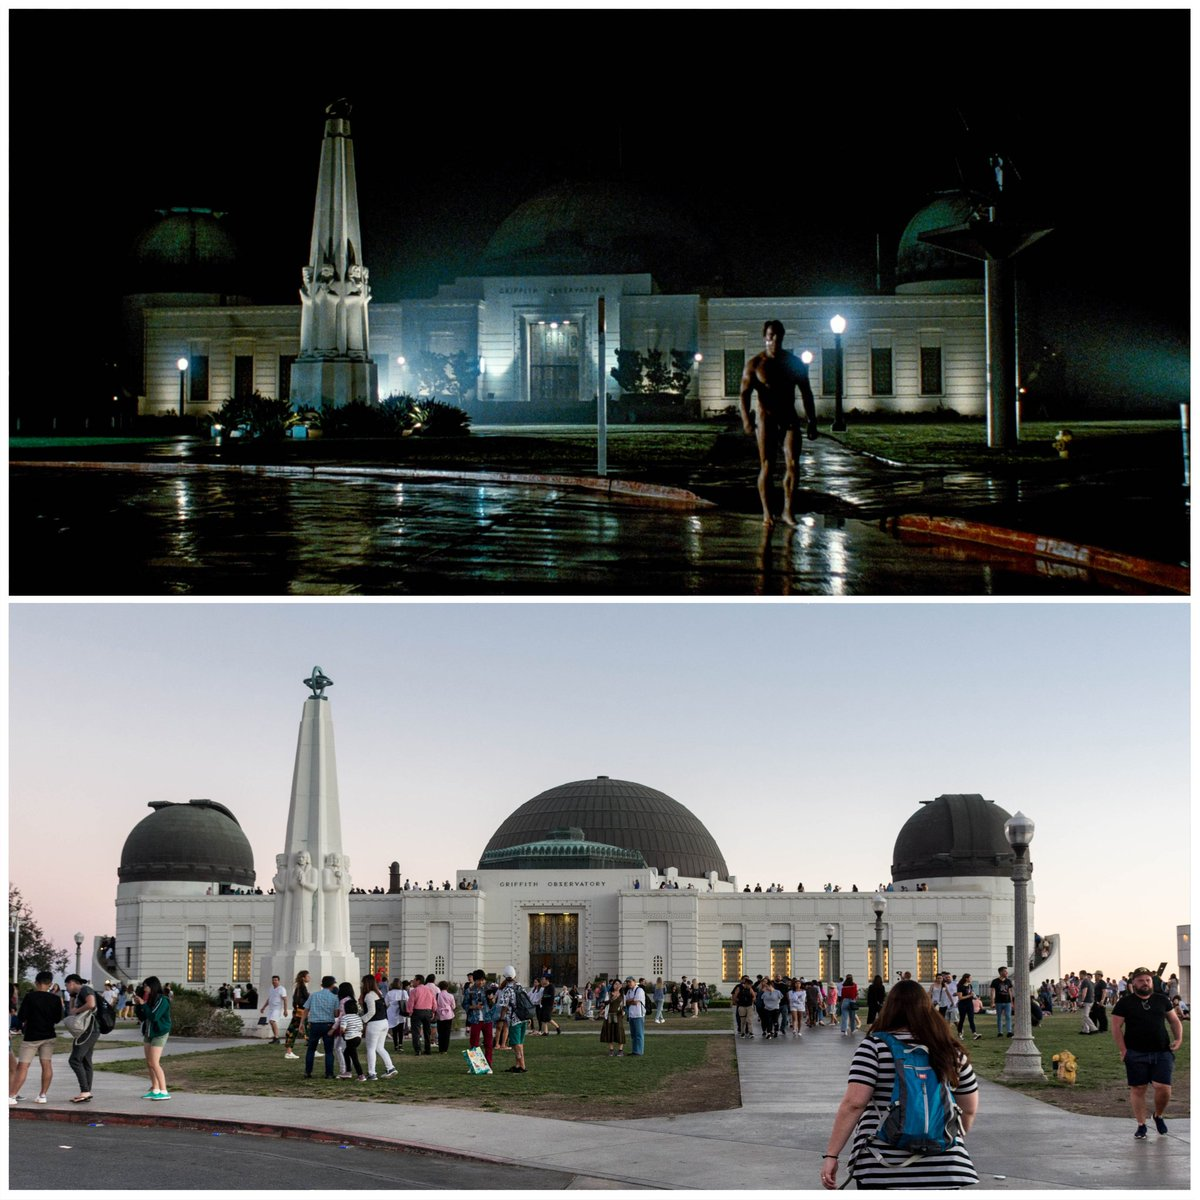 The Terminator September 2018 Griffith Observatory, Los Angeles, California • #TheTerminator #GriffithObservatory #LosAngeles #California #ArnoldSchwarzenegger #Movies #FilmingLocation #MovieLocation #FilmLocation #Nikon #FanEdit #Terminator #DiscoverLA #VisitCaliforniapic.twitter.com/nciVBAlvdA